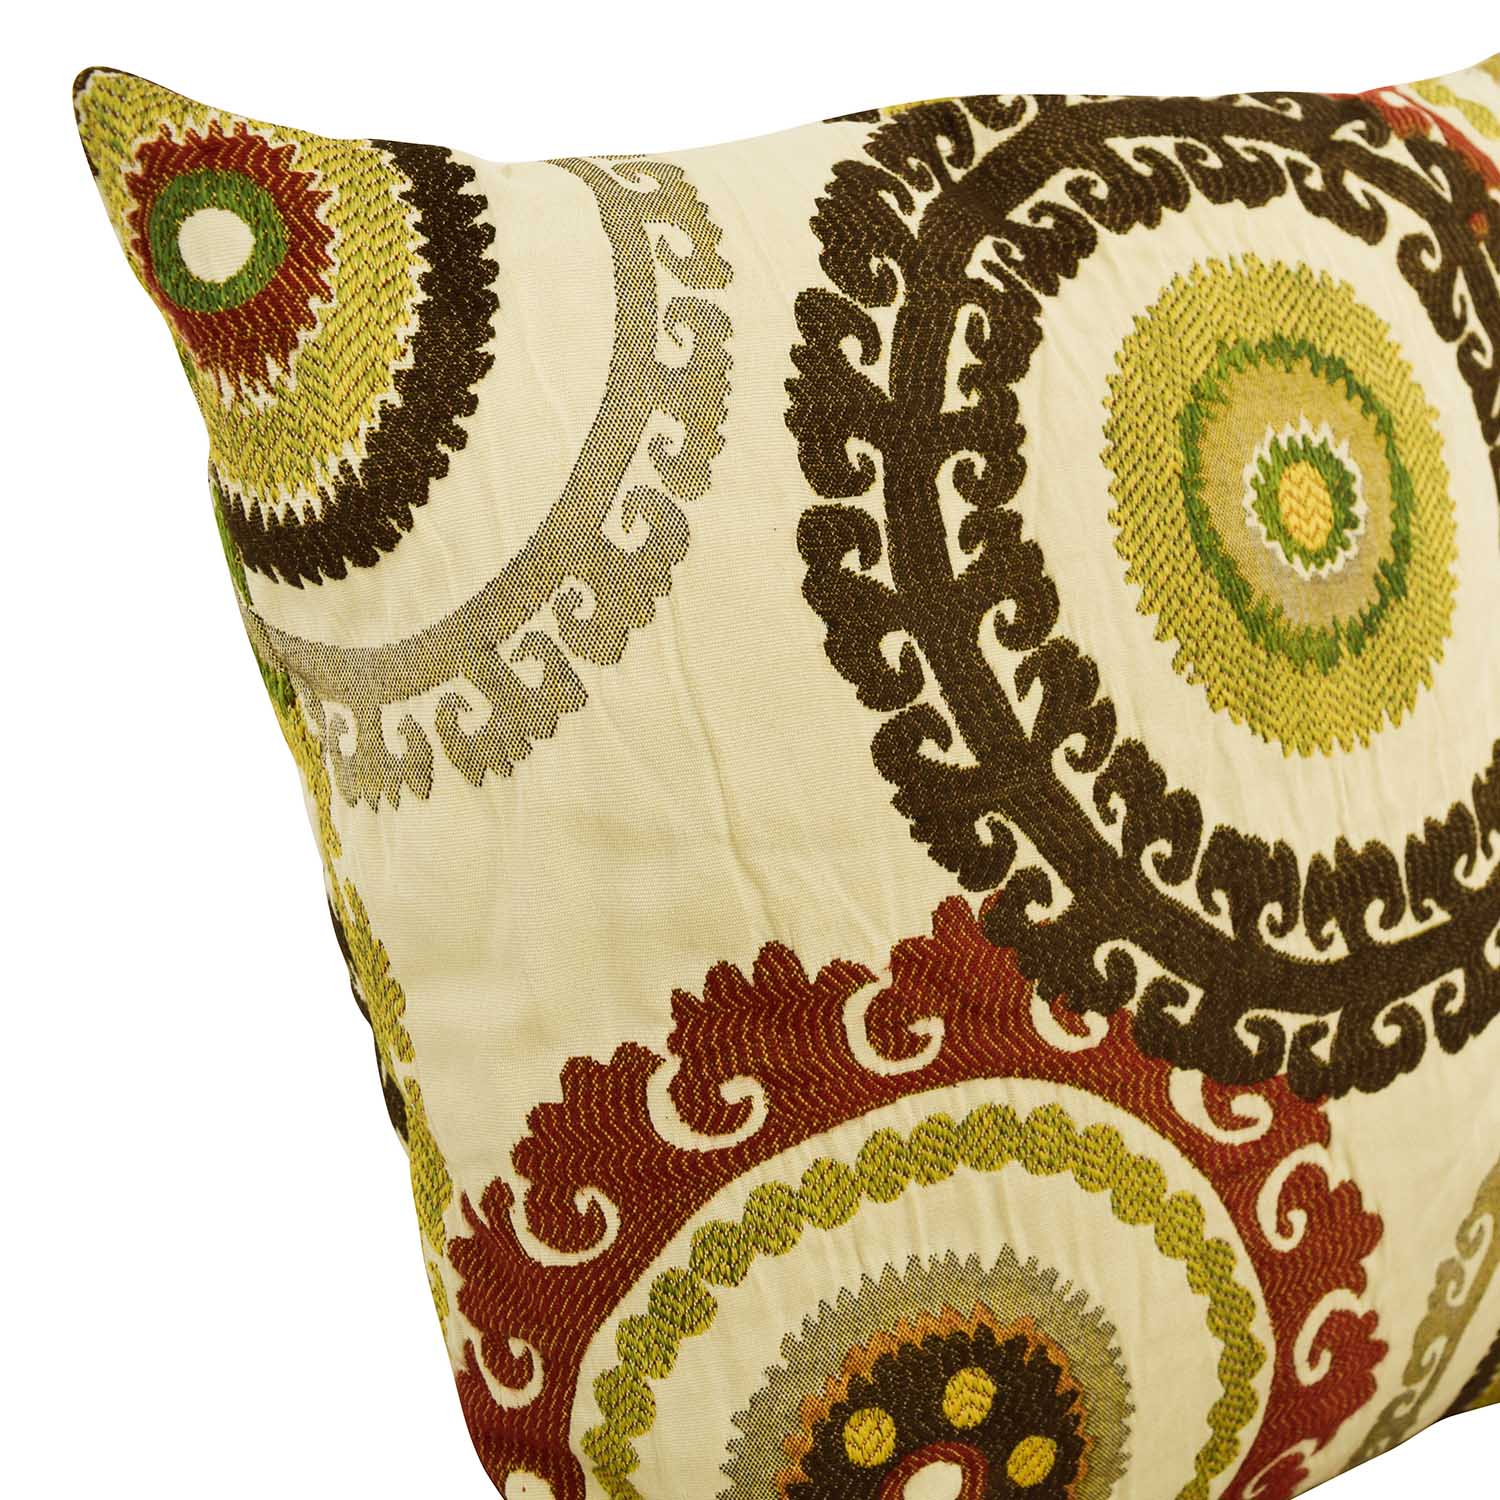 Multi-colored Embroidered Square Pillows Decor